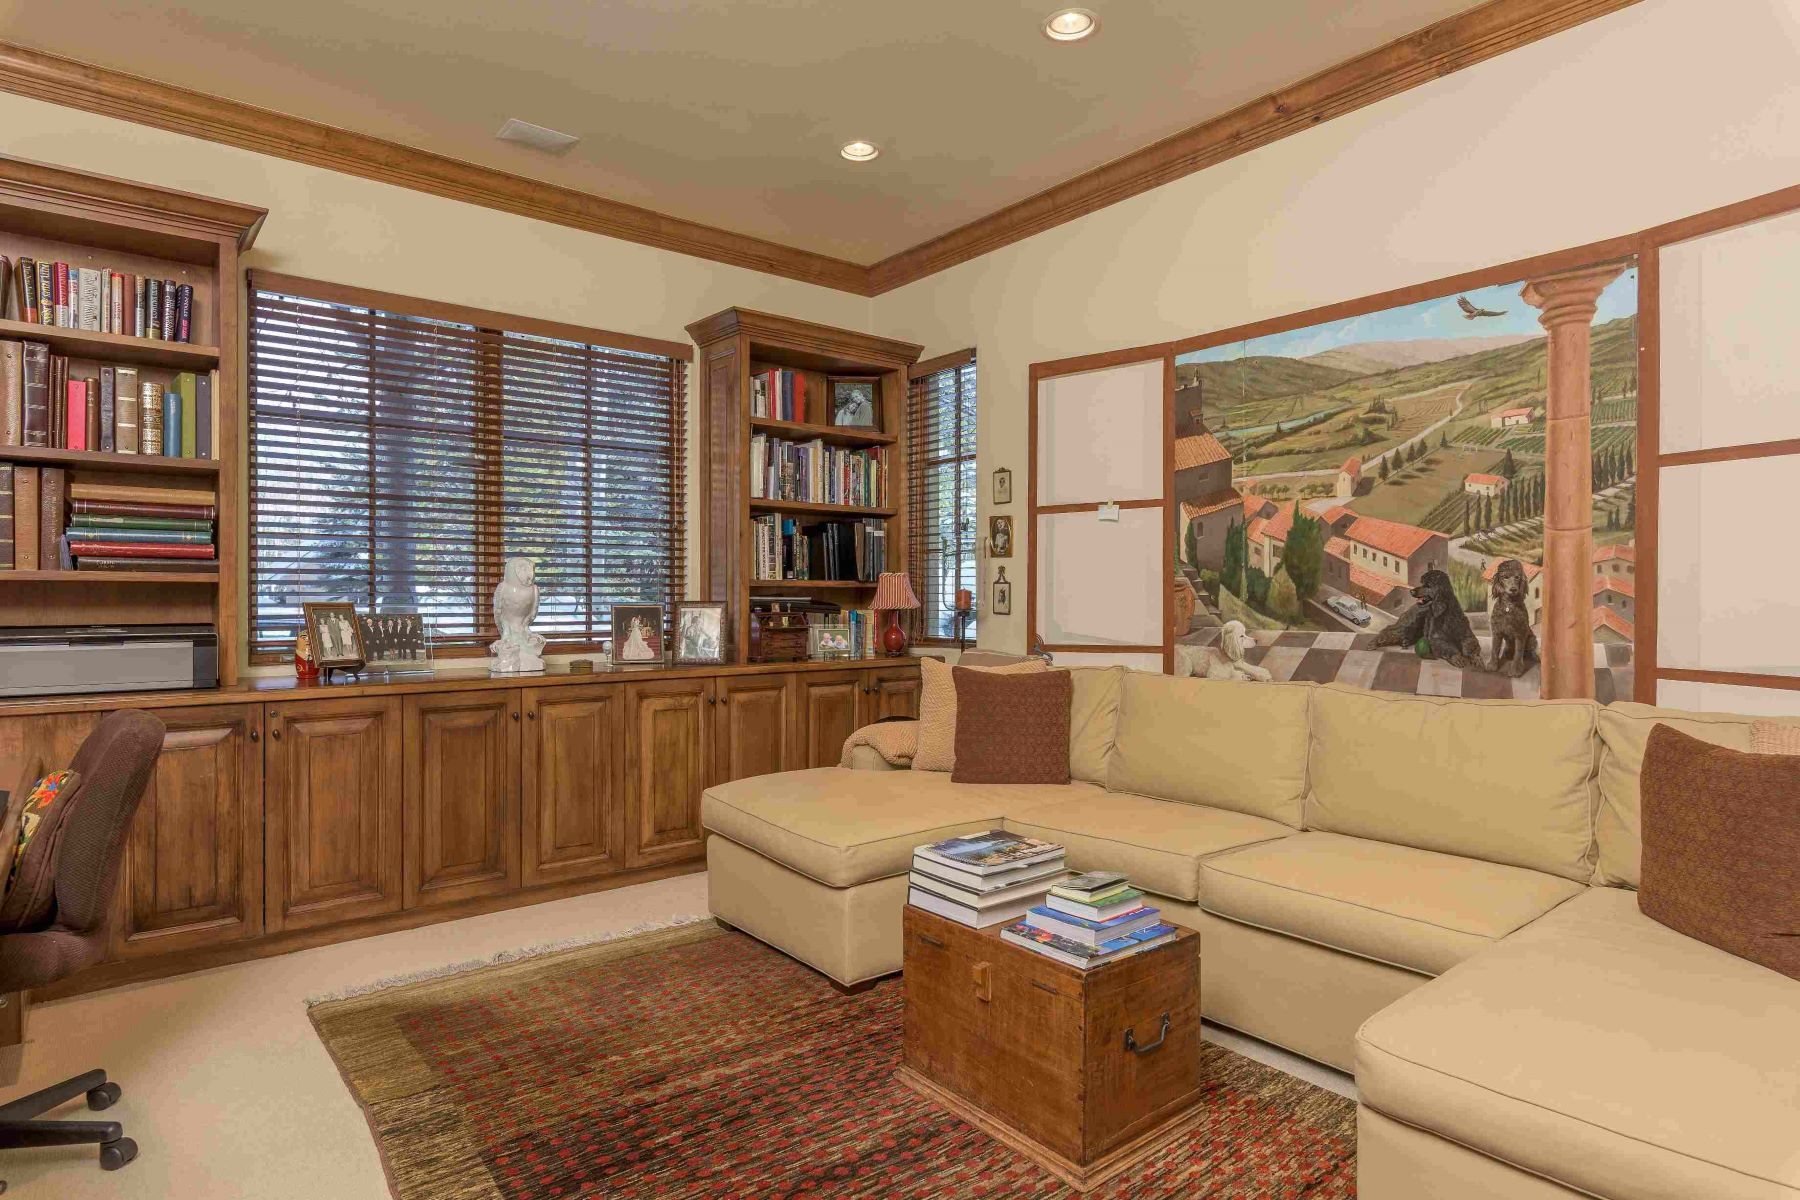 Additional photo for property listing at Rarely Available Estate Caliber Home 1100 W Canyon Run Blvd. 凯彻姆, 爱达荷州 83340 美国